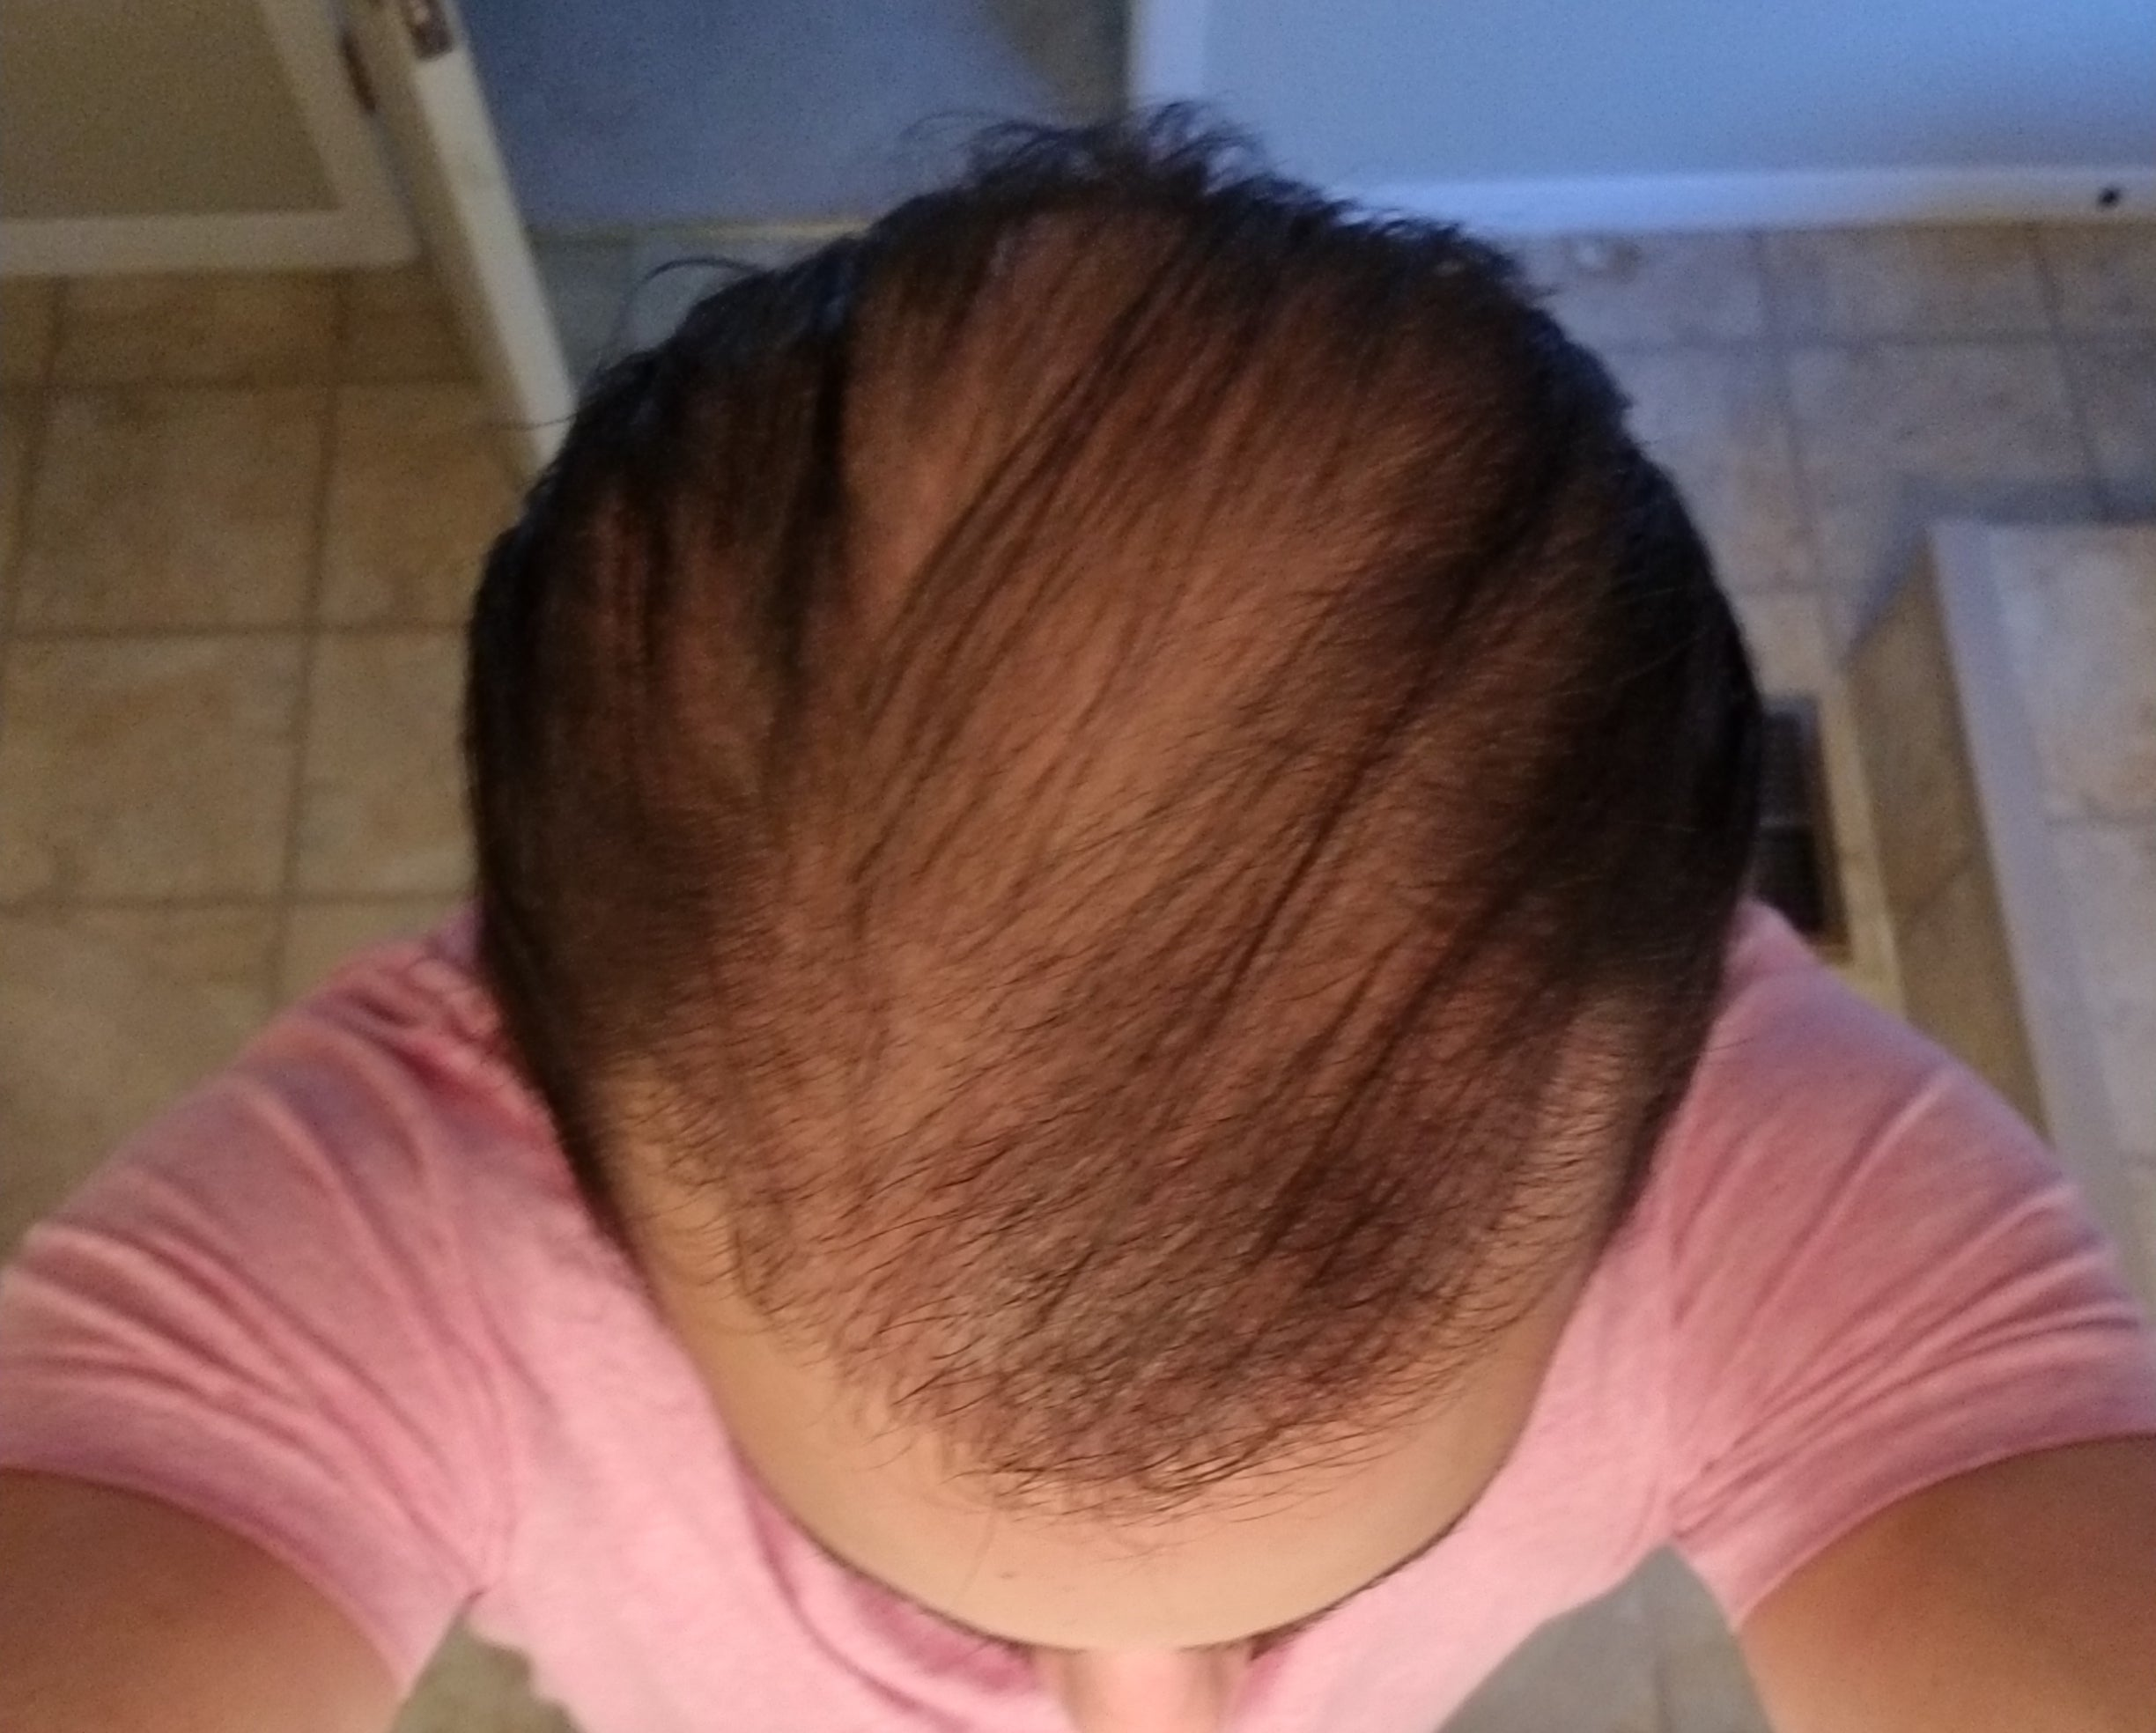 Results after hair transplant